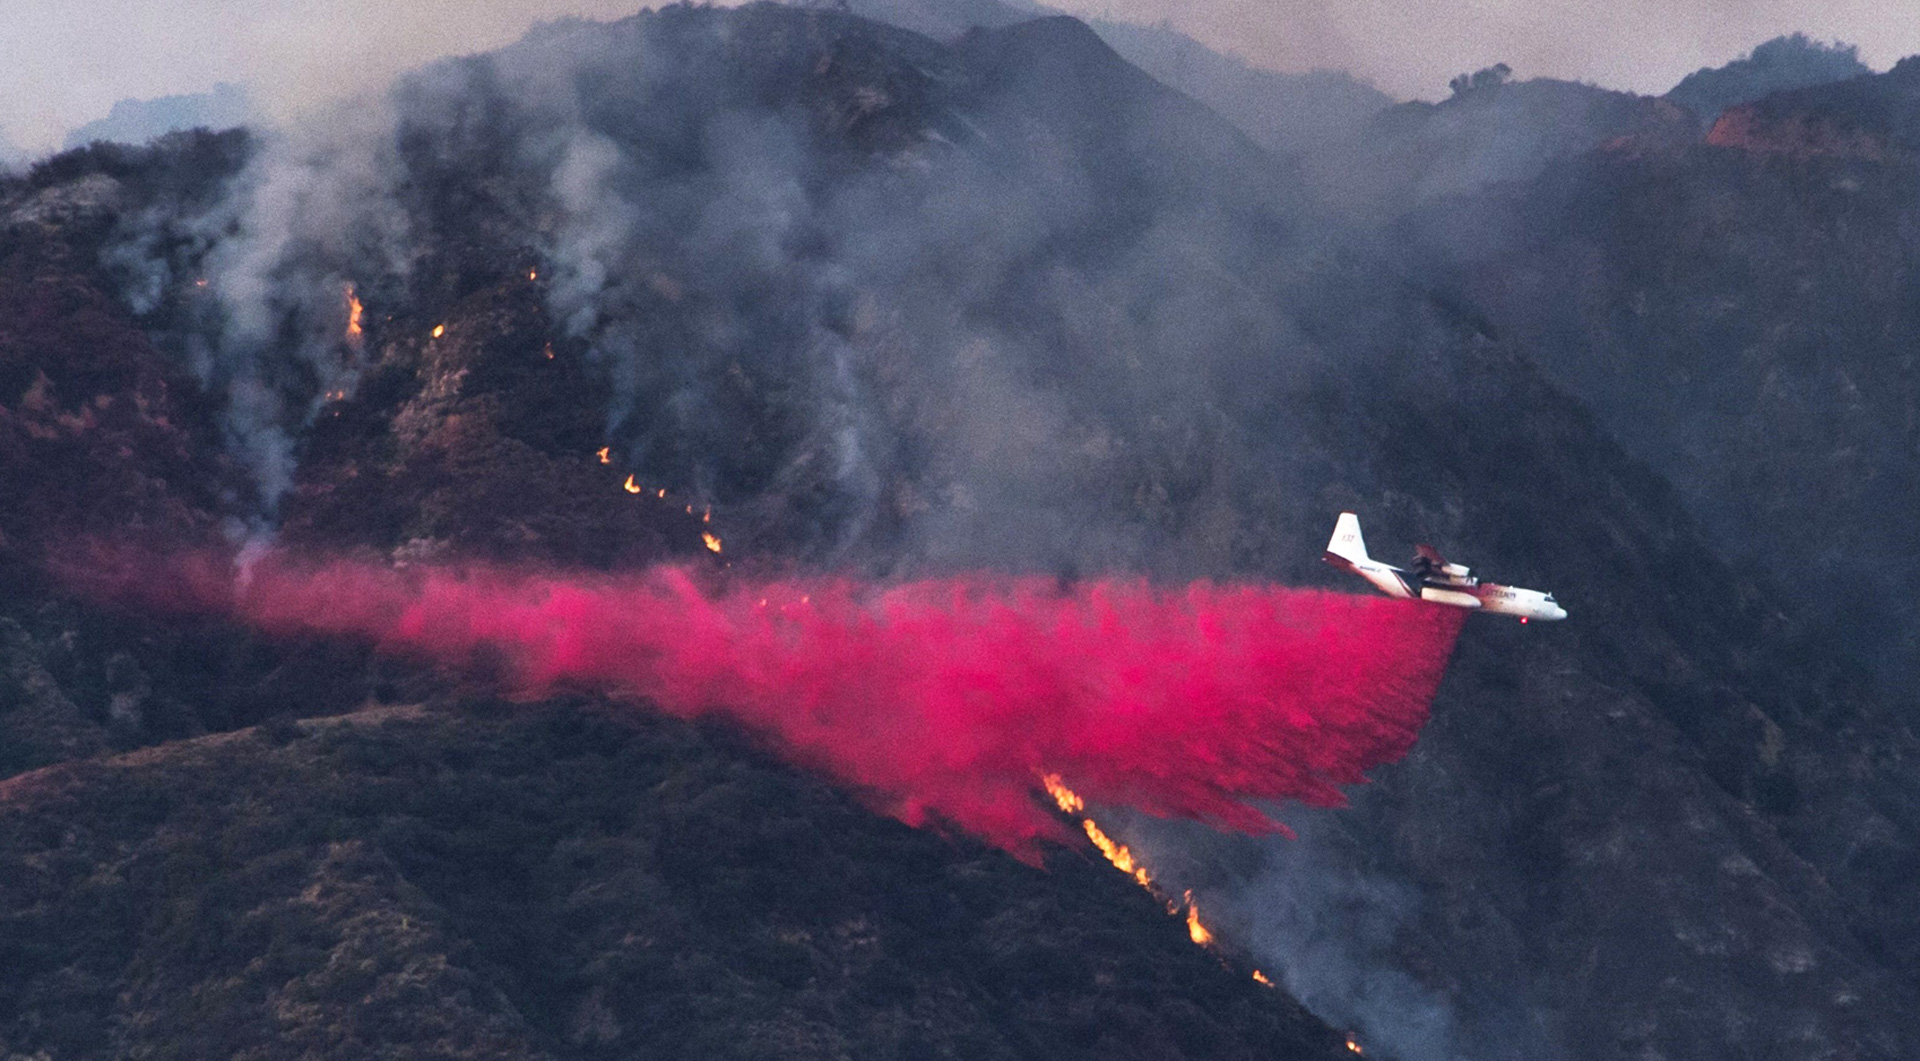 An aircraft drops fire retardant to prevent the advance of the San Gabriel Complex Fire in the Angeles National Forest, near Duarte on June 21, 2016.